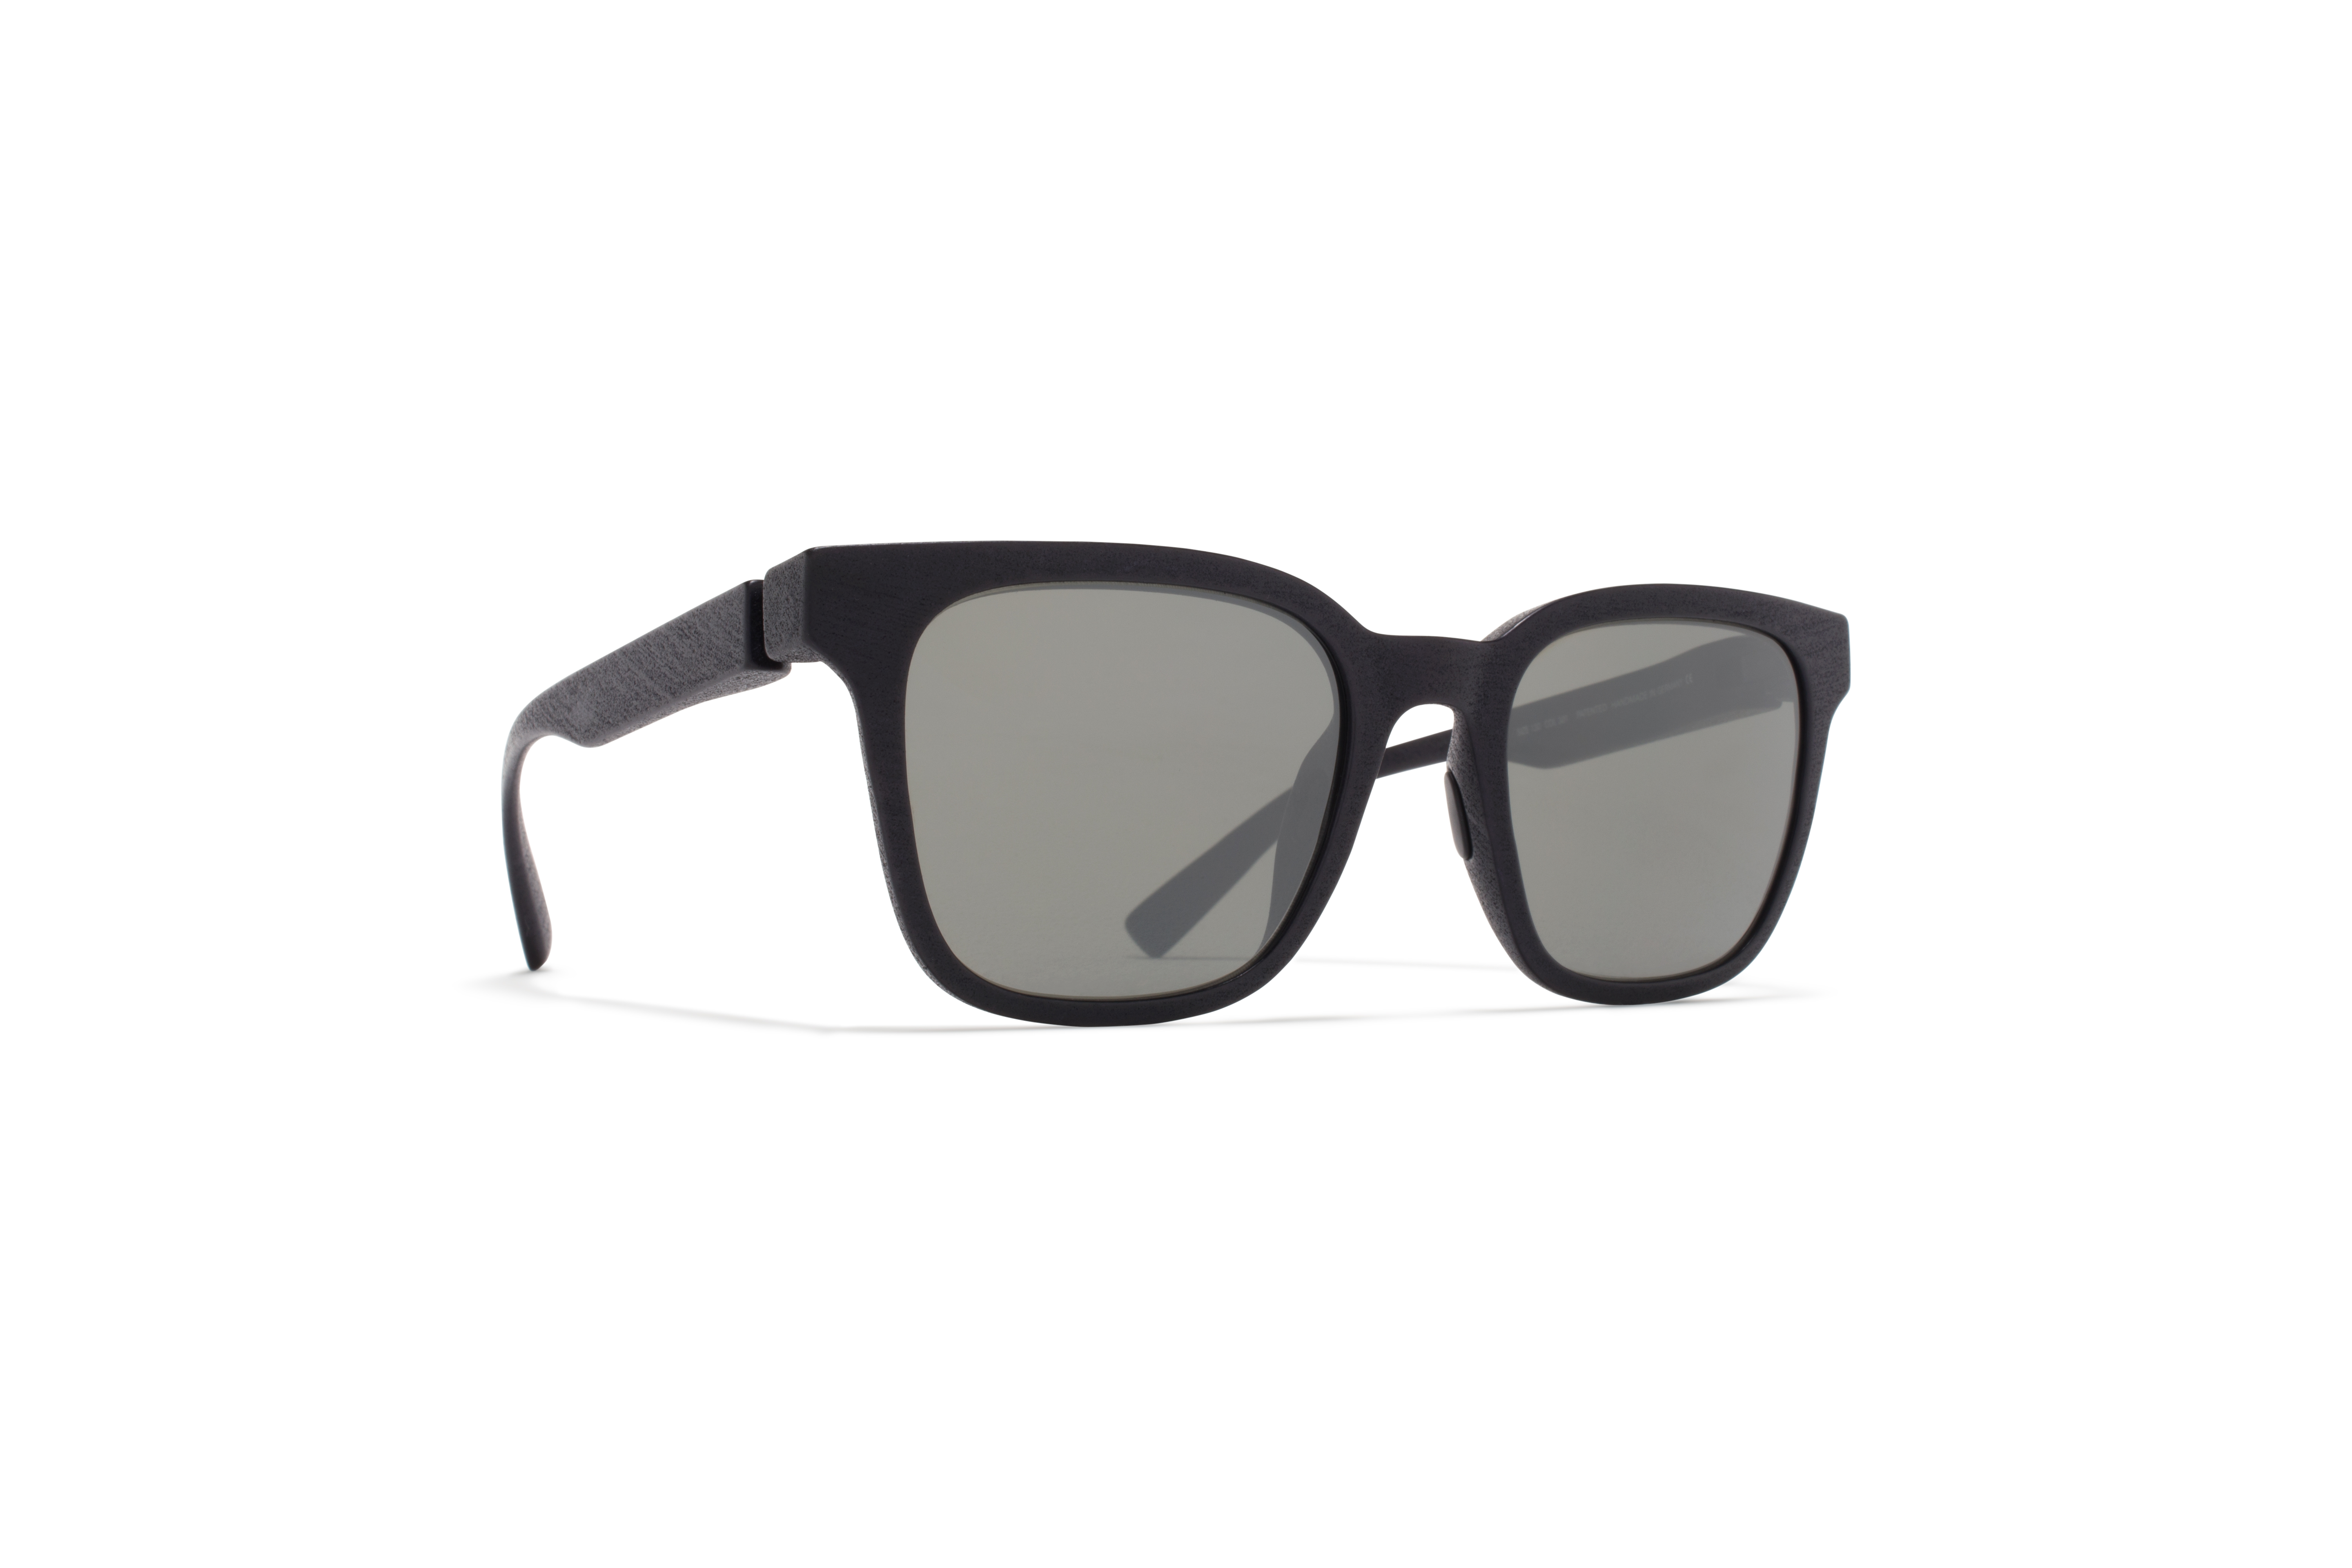 MYKITA Mylon Sun Maverick Md1 Pitch Black Mirror B58ab22acbf1b6